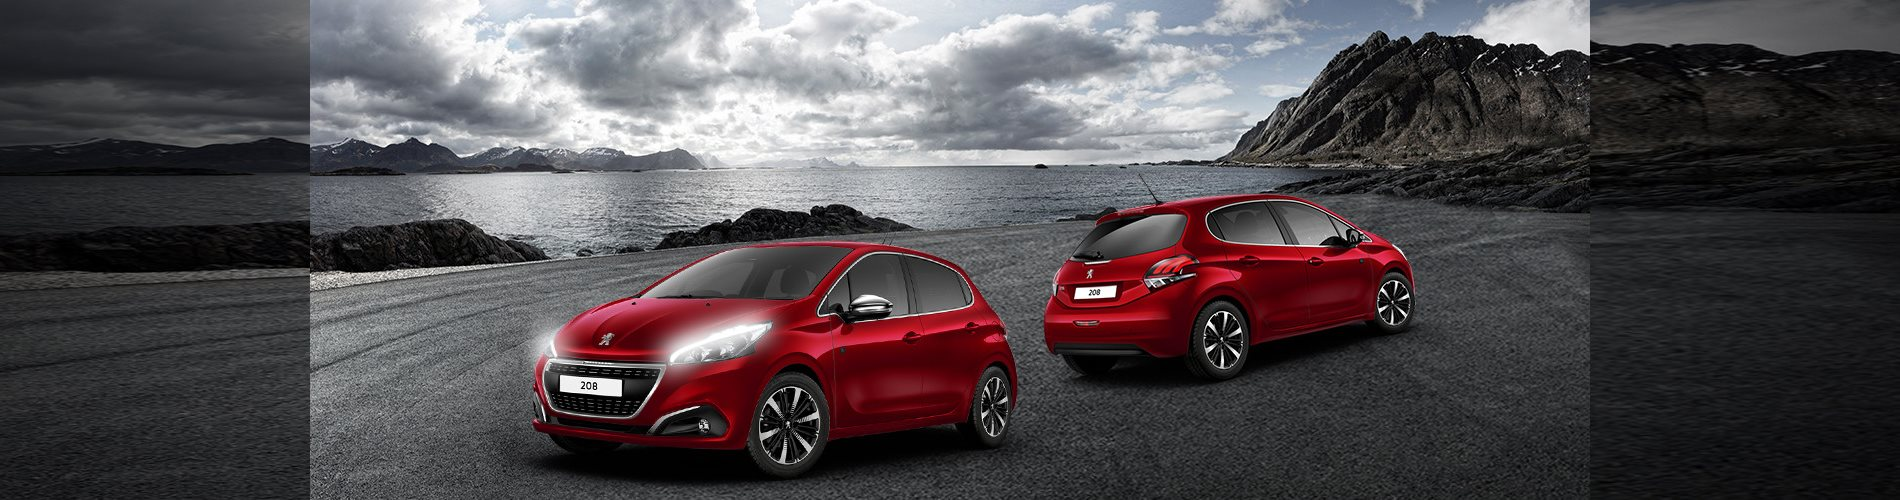 New Peugeot 208 Offer at Wycliffe Peugeot Rugby